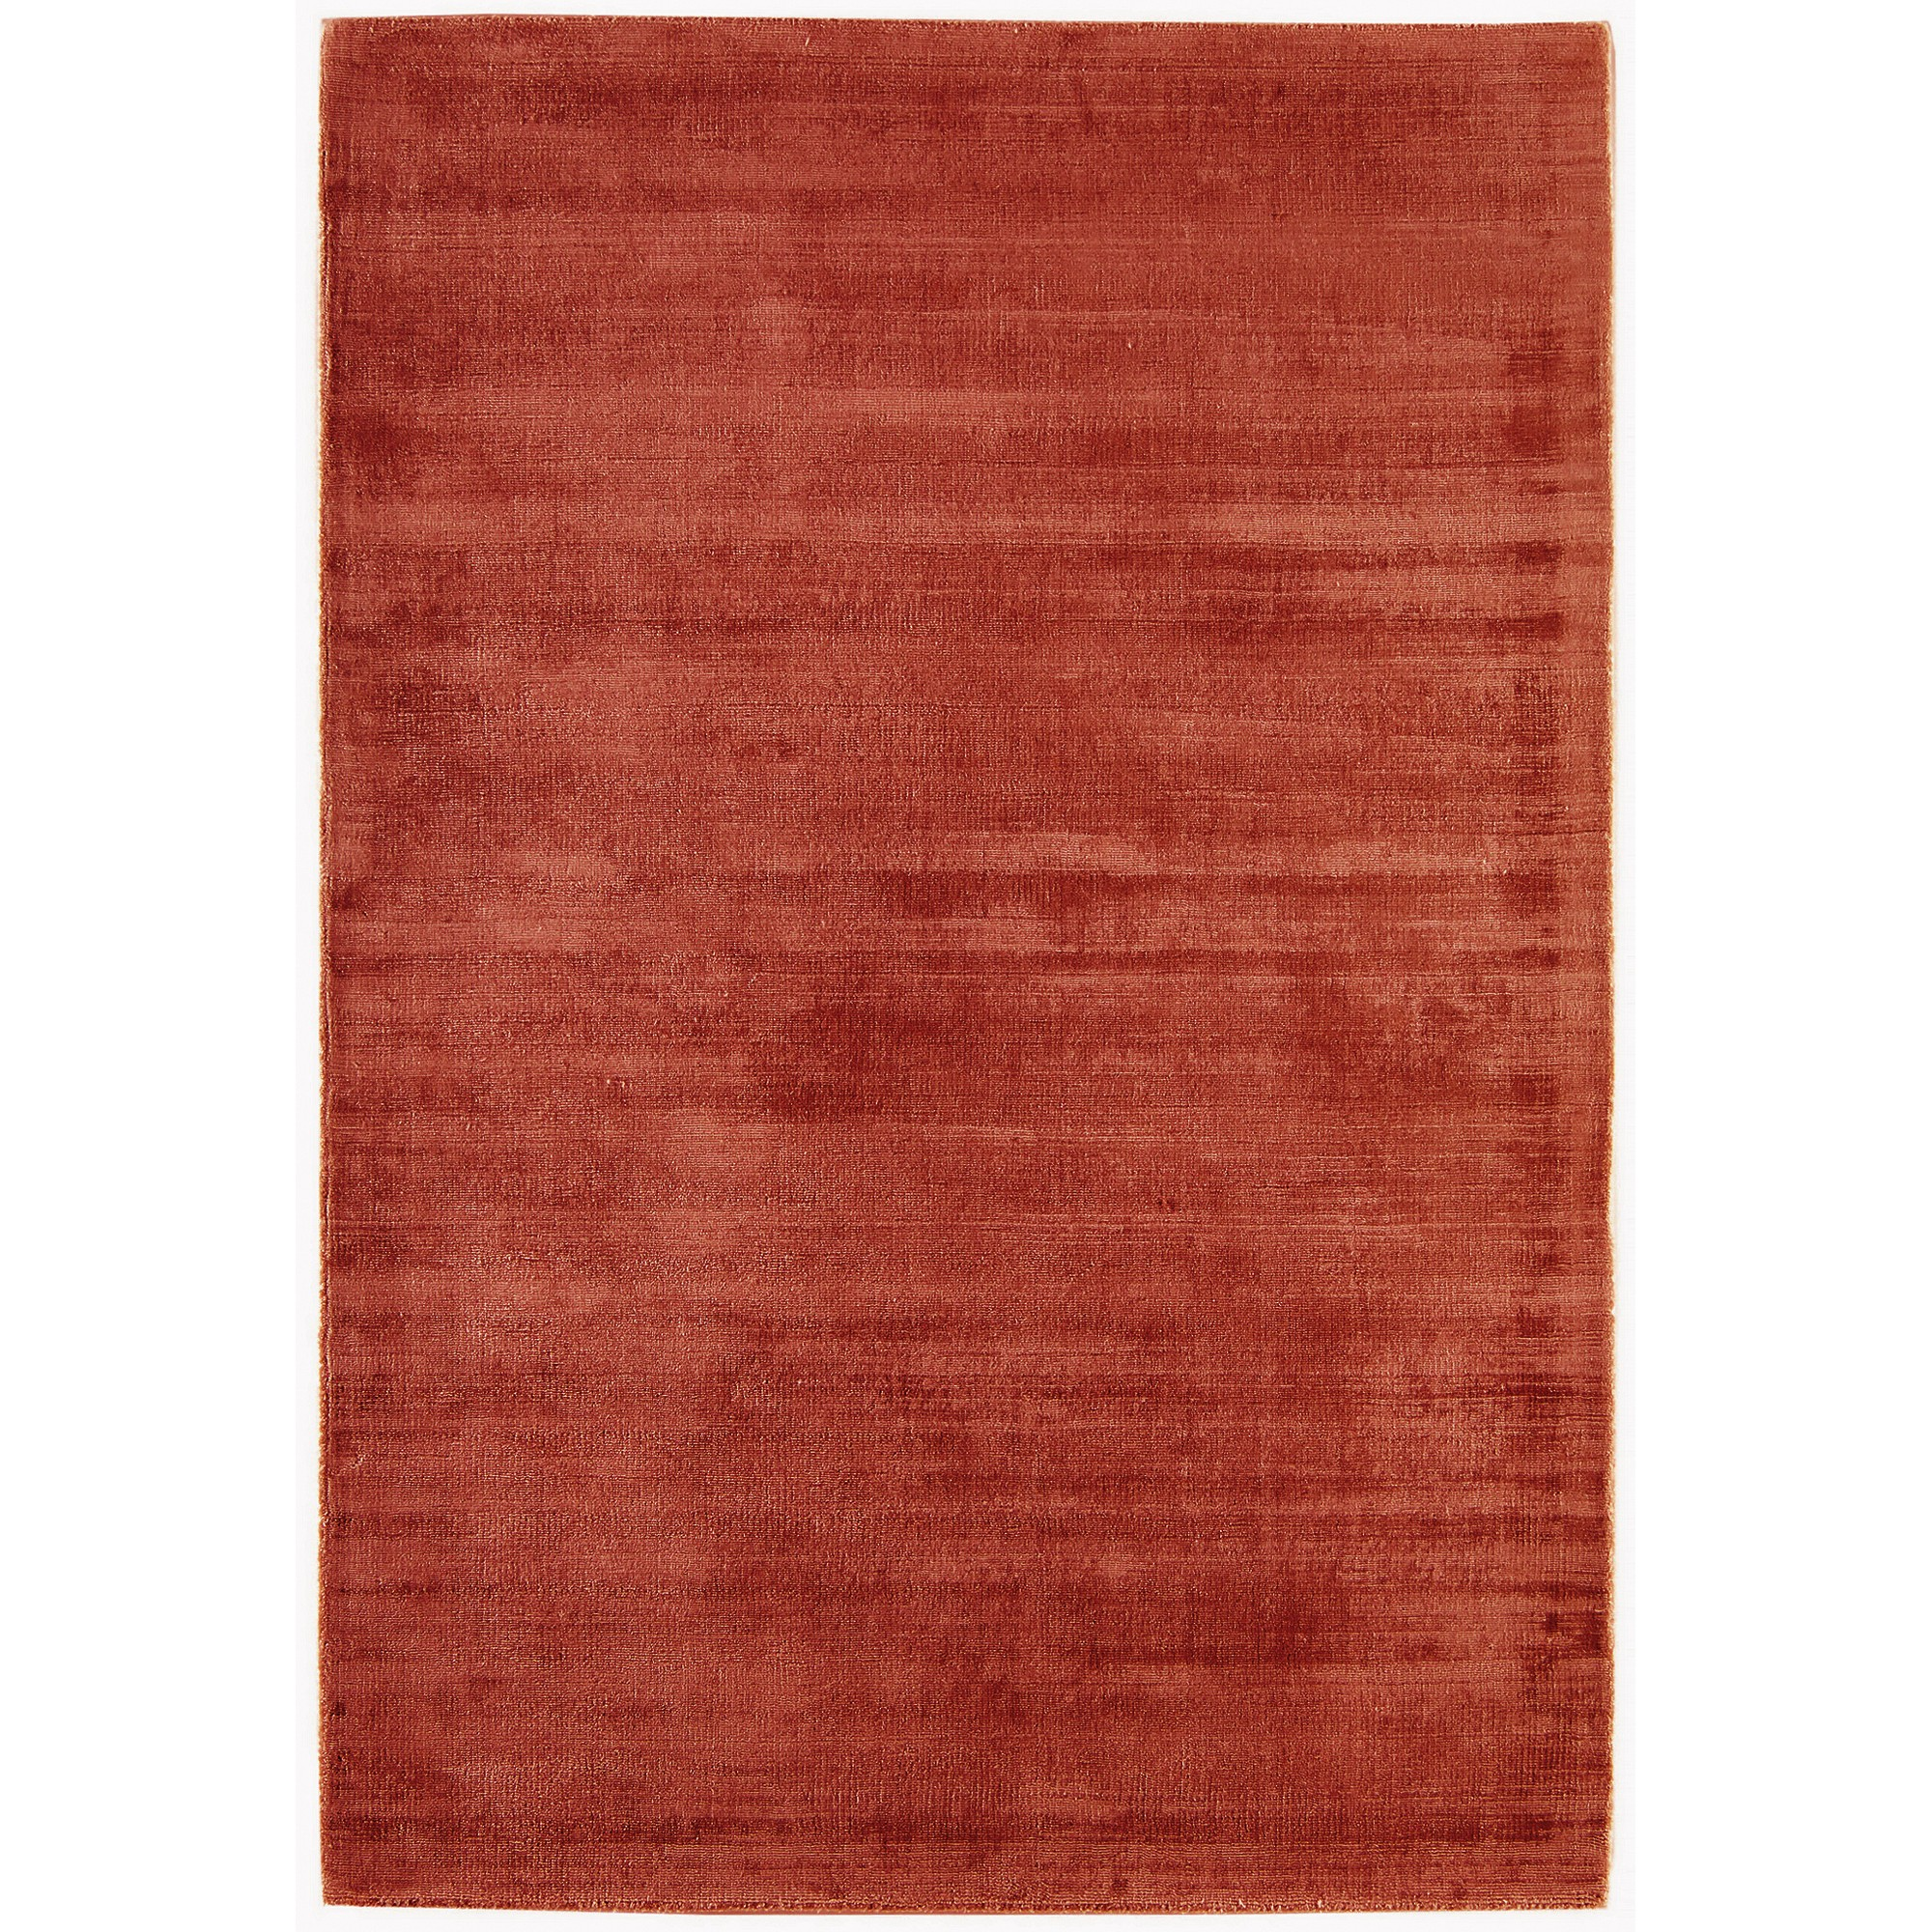 Blade Plain Rugs in Russet